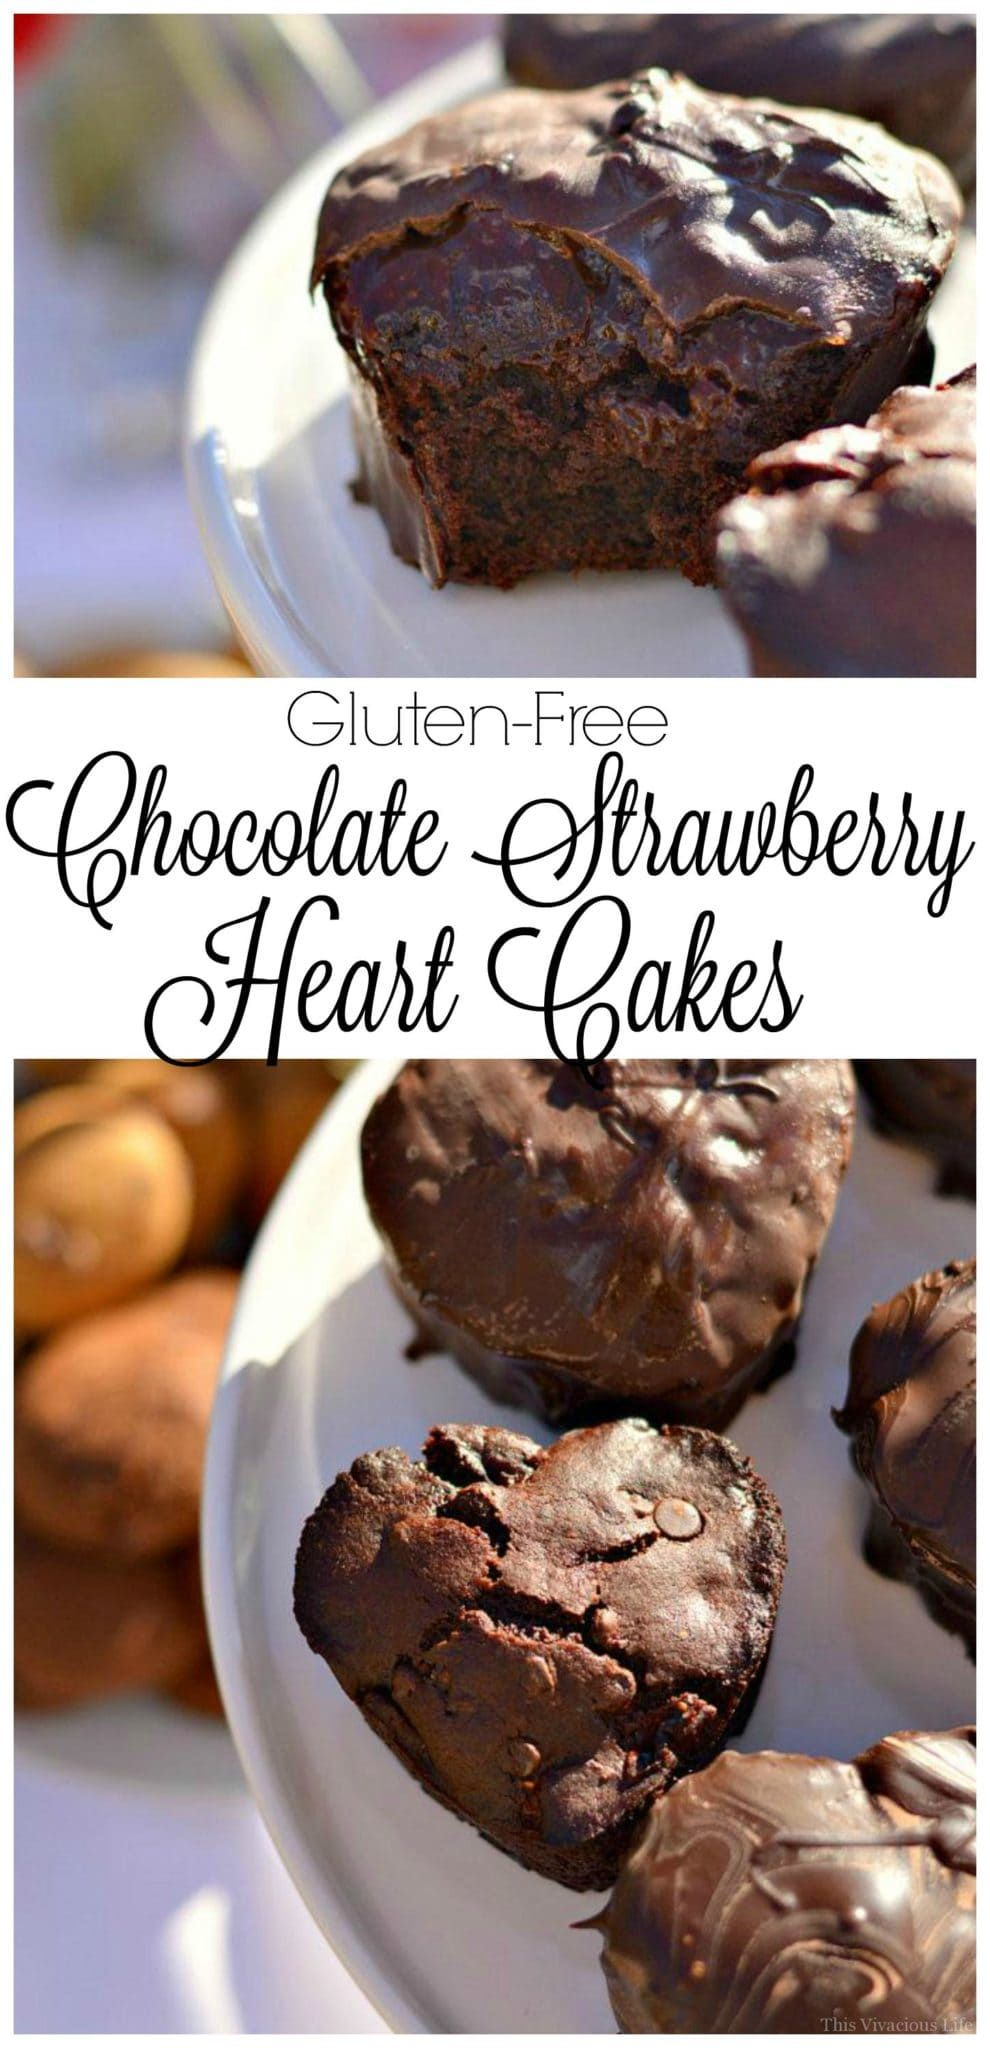 Chocolate Strawberry Heart Cakes